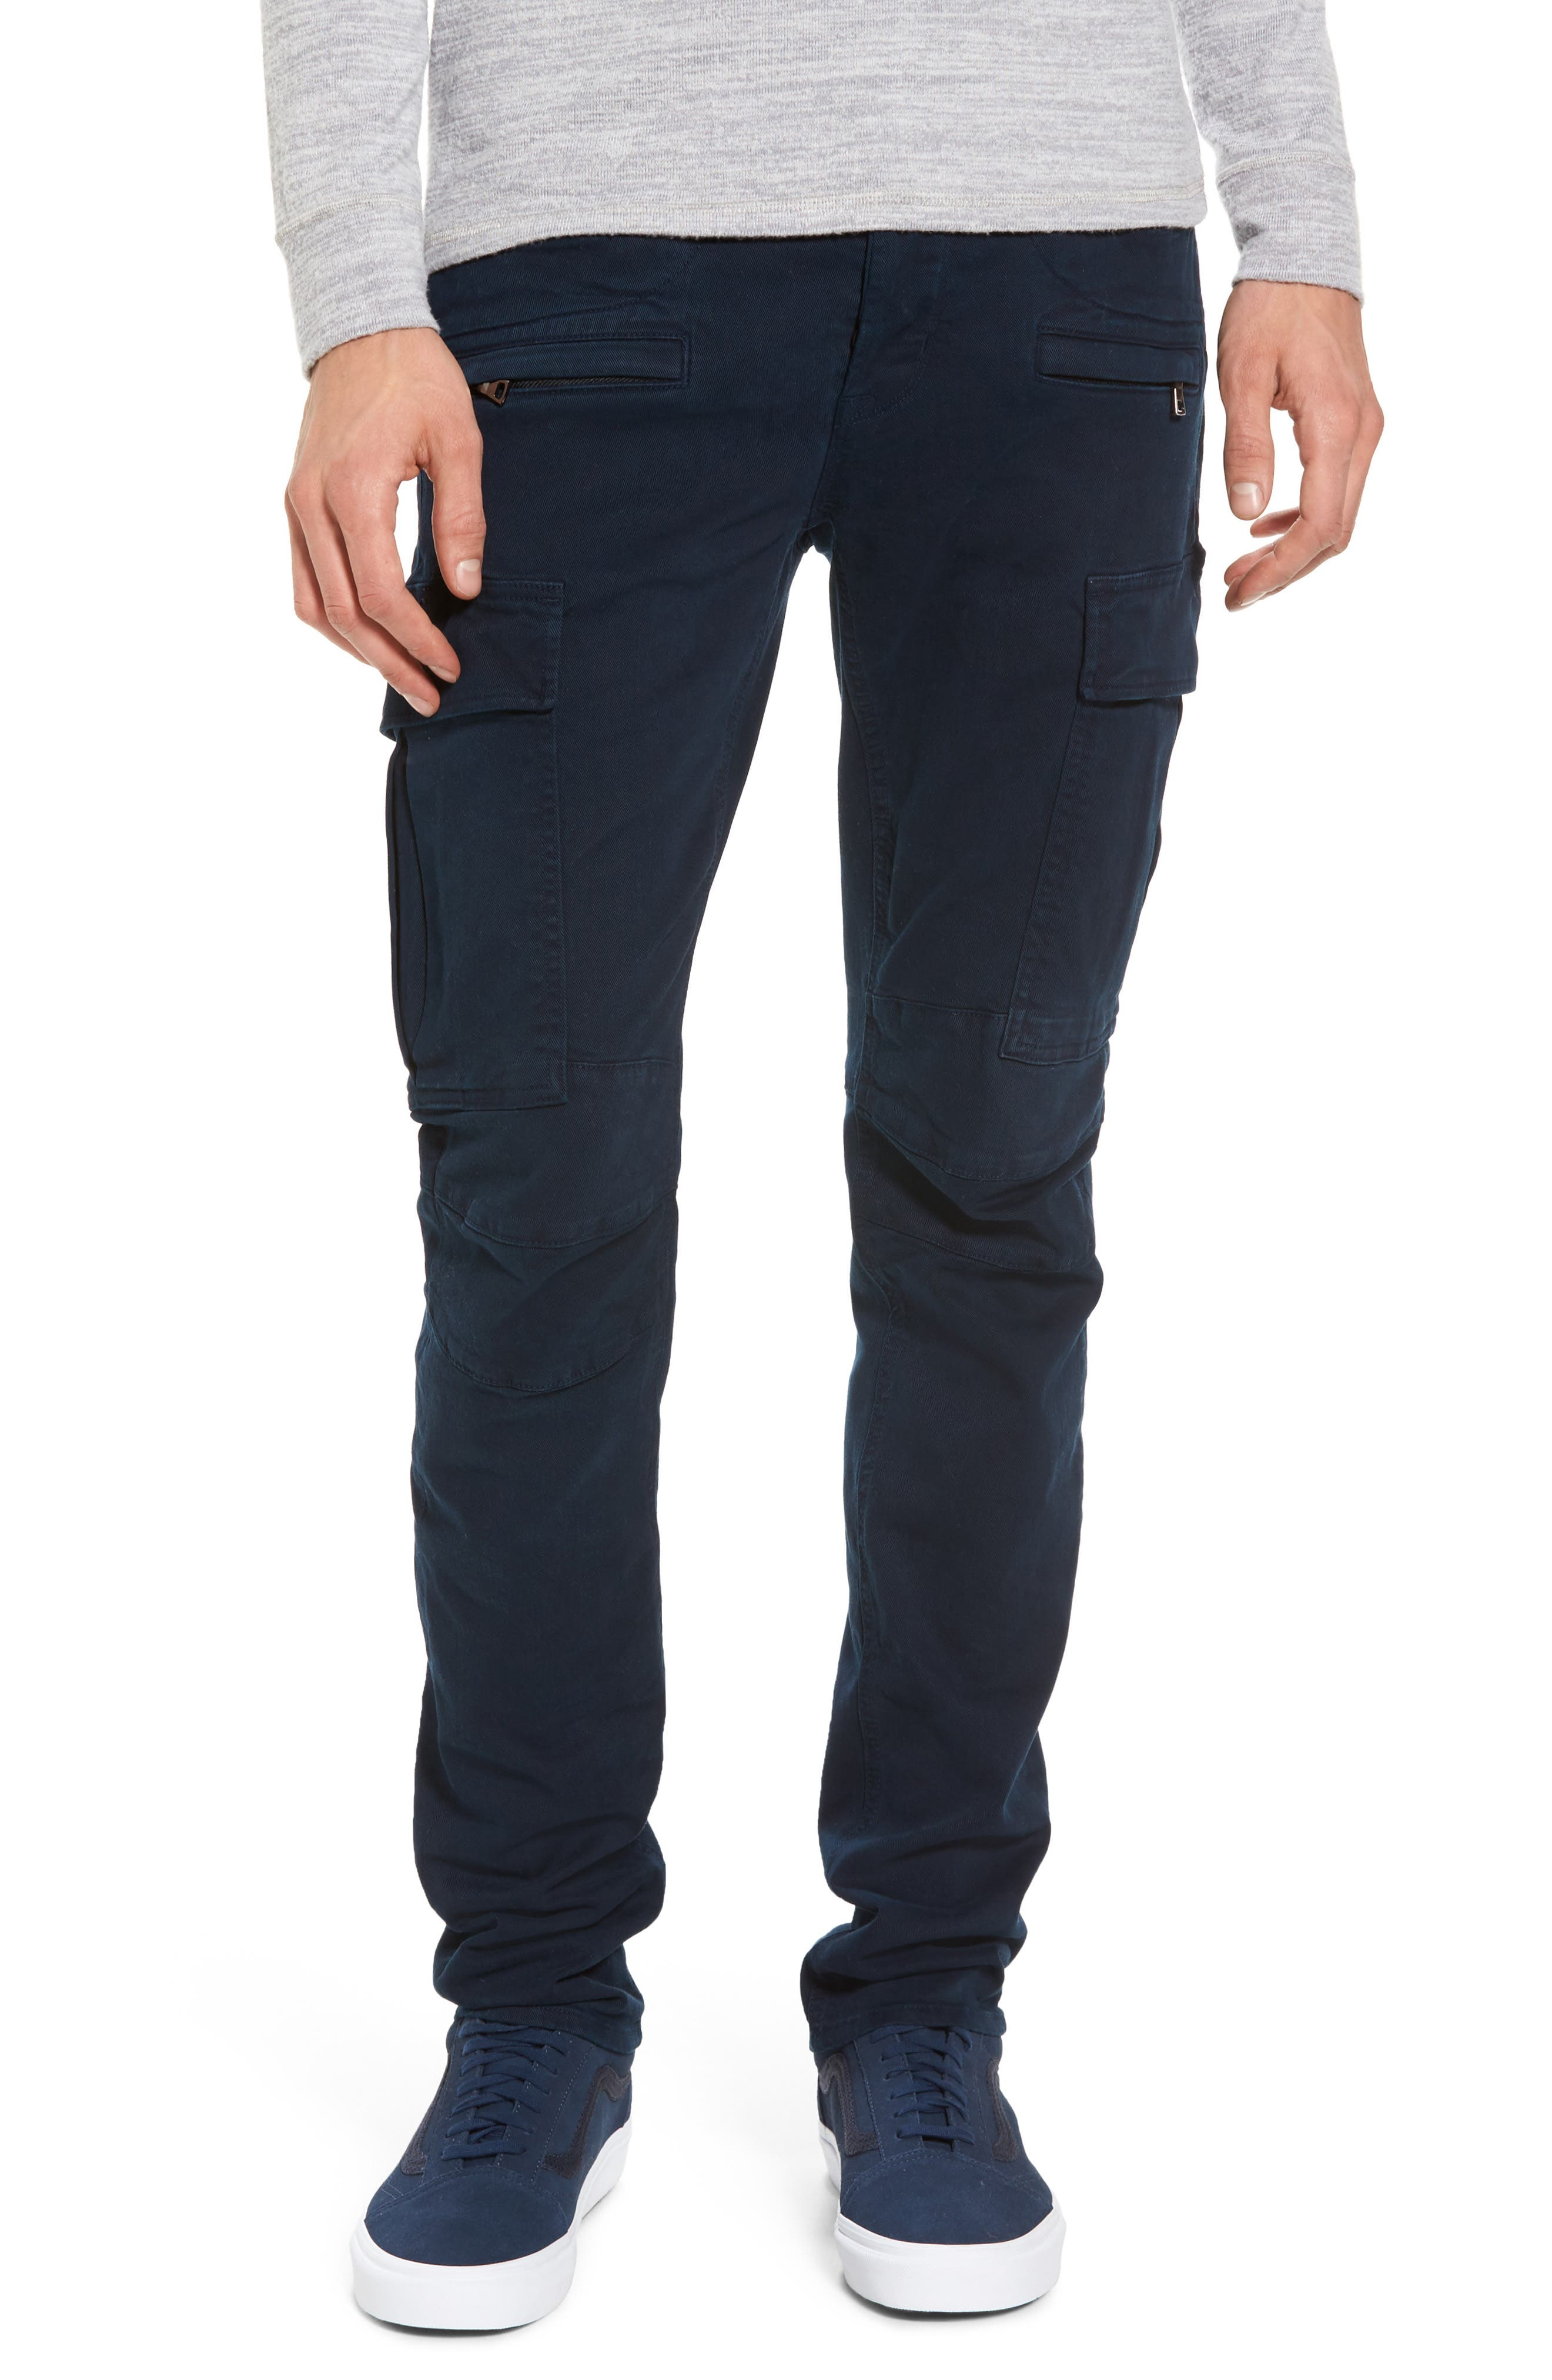 Greyson Cargo Biker Skinny Fit Jeans,                             Main thumbnail 1, color,